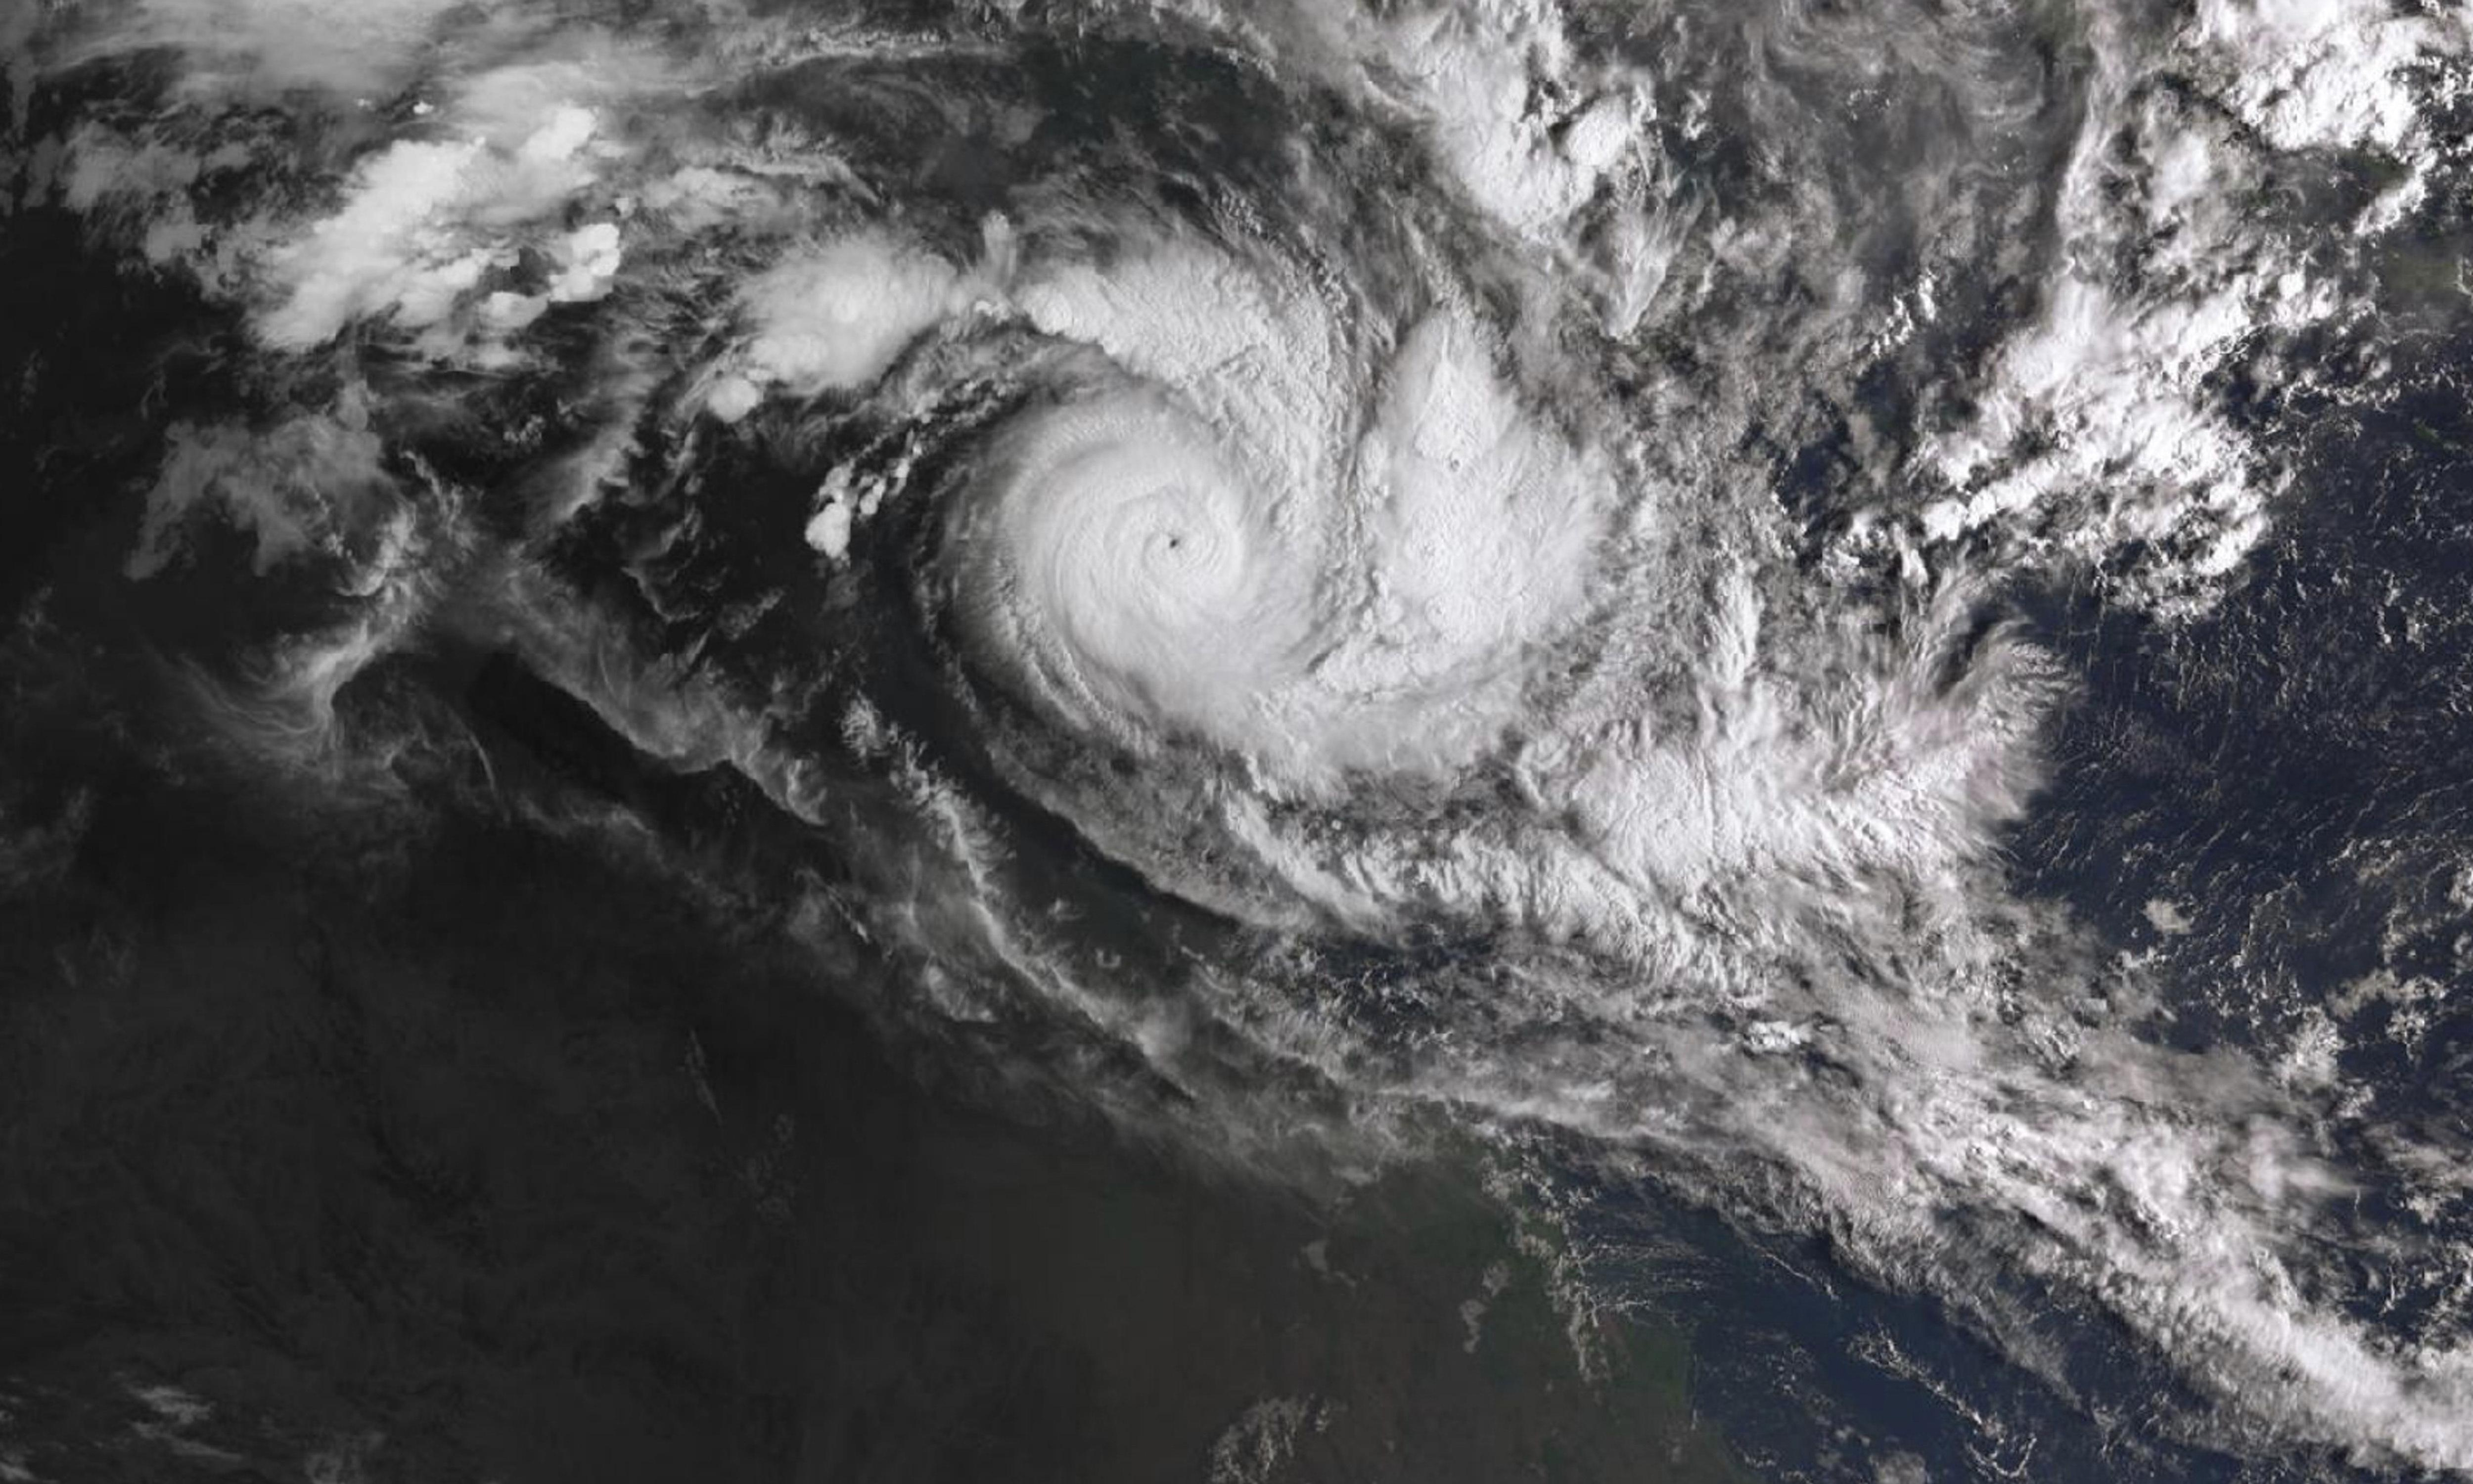 Twin cyclones force largest evacuation since Cyclone Tracey in 1974